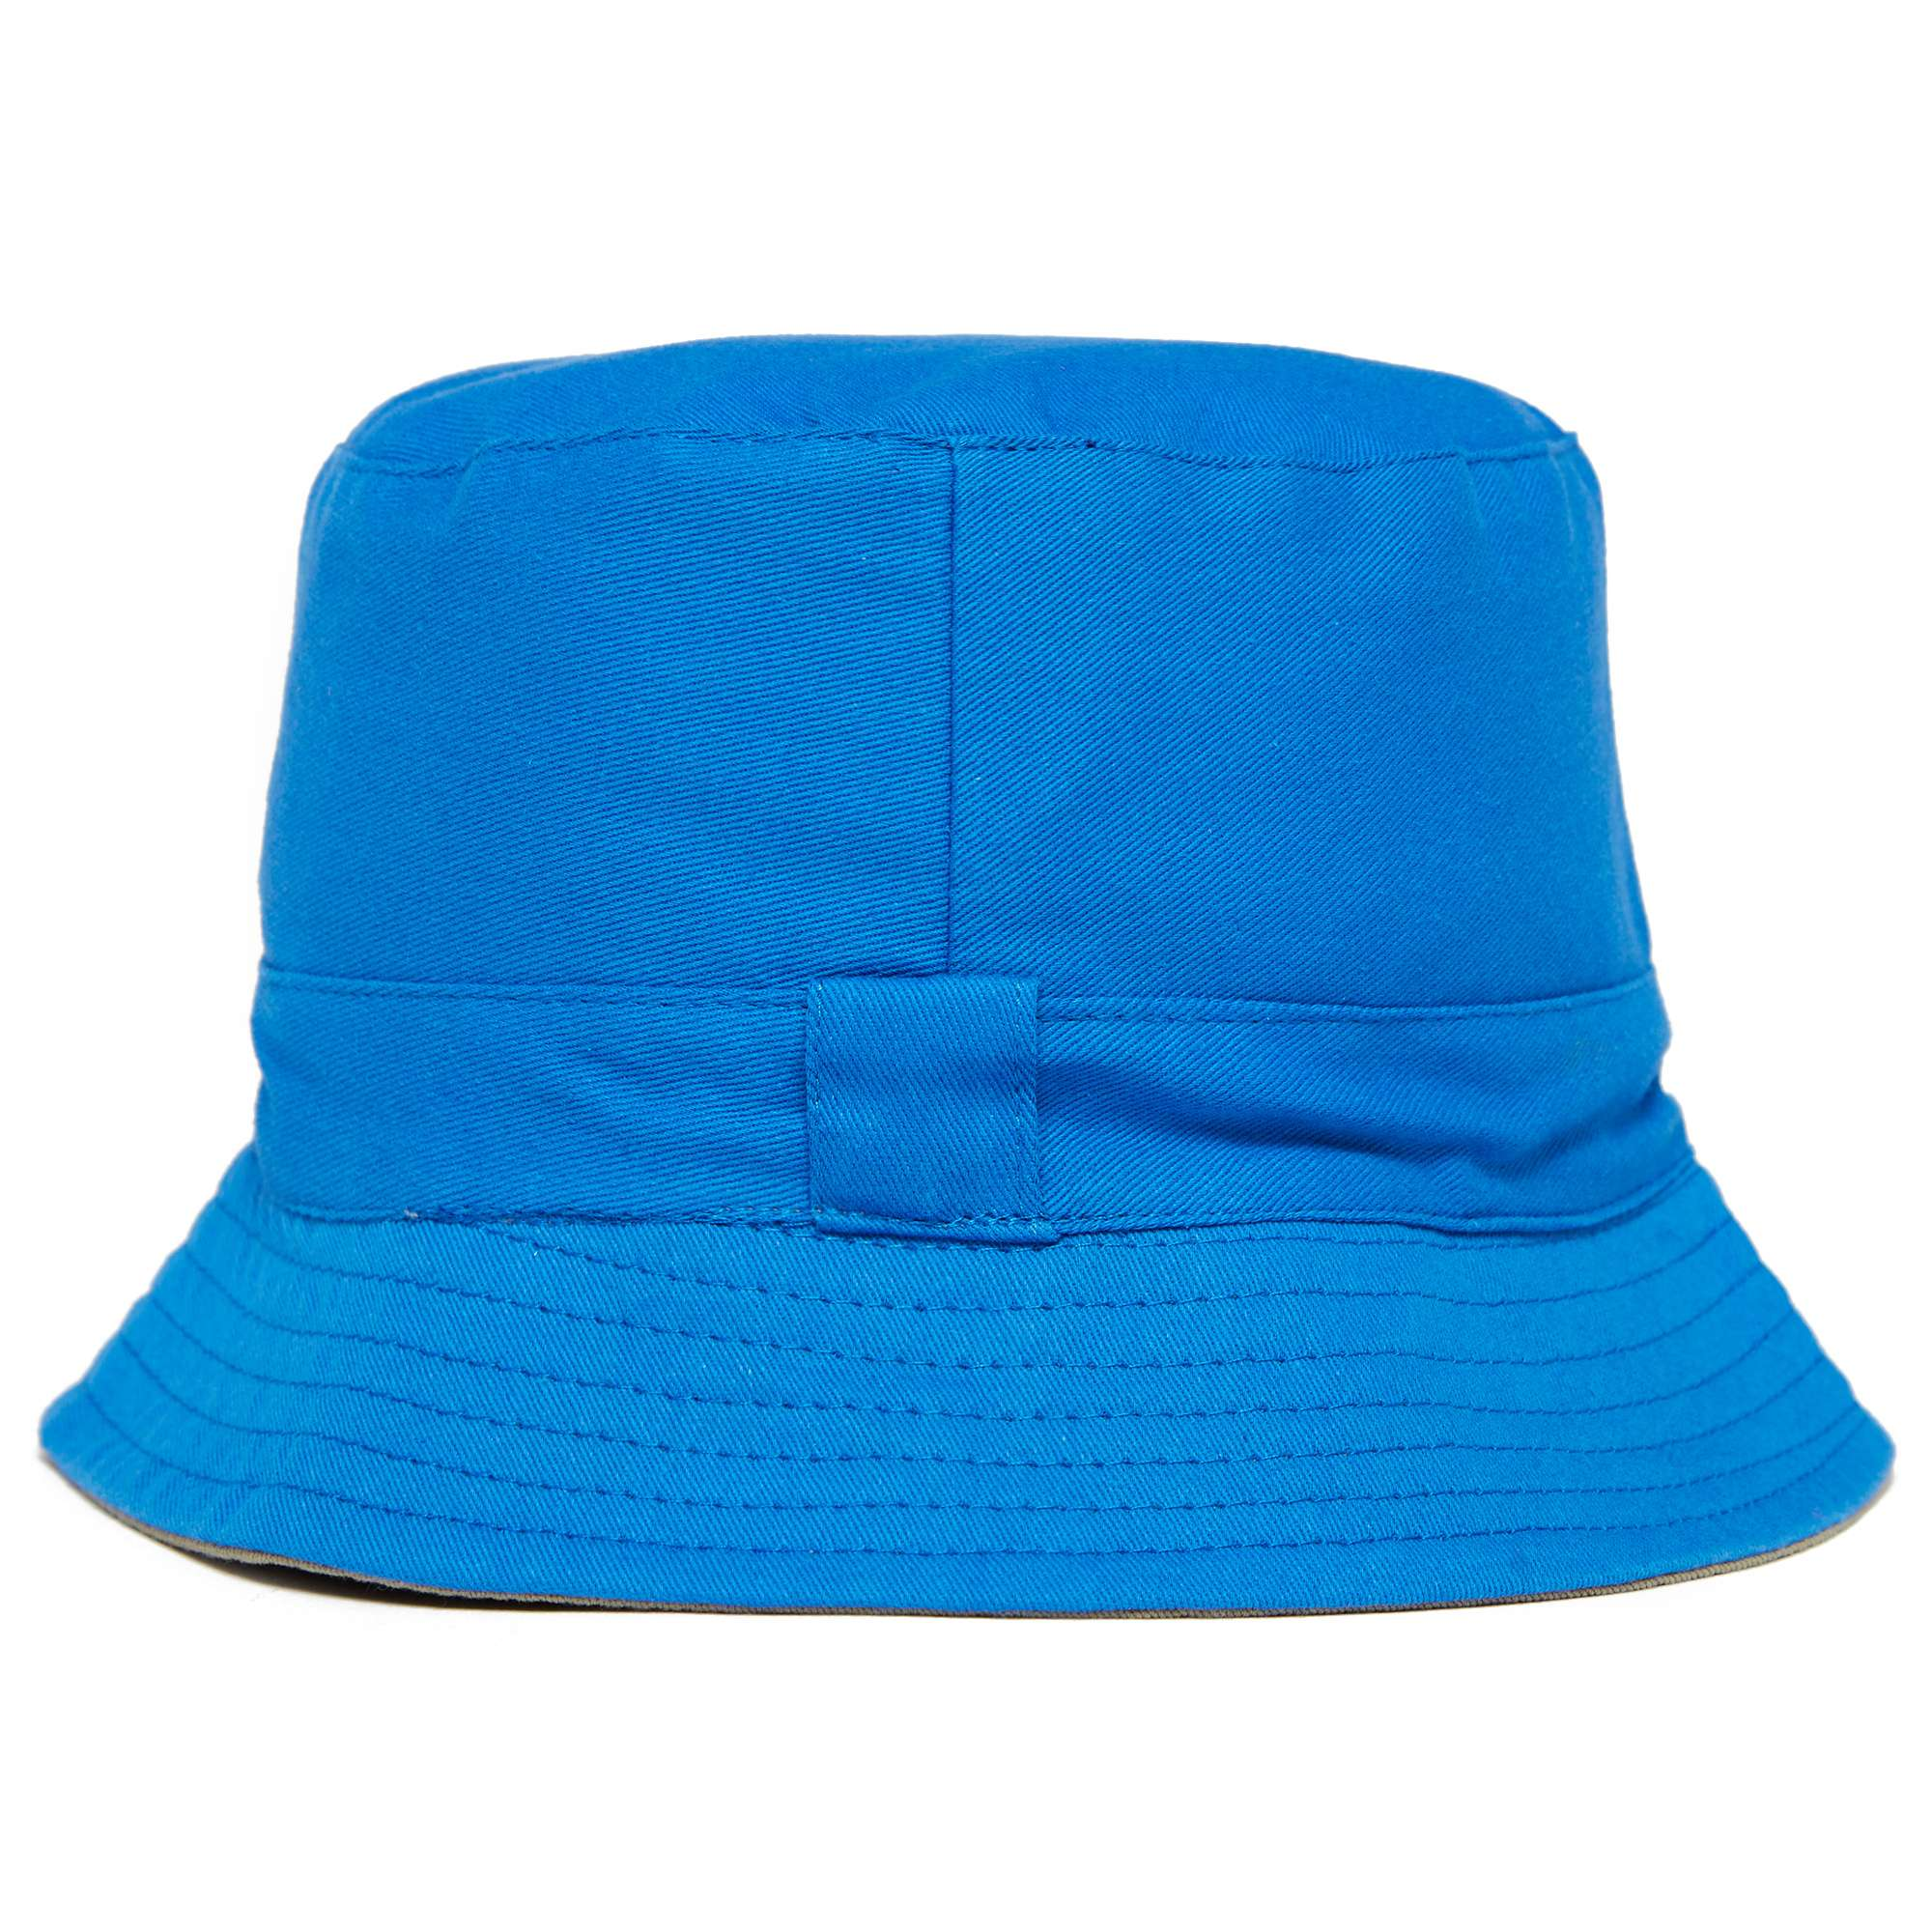 PETER STORM Kids' Reversible Bucket Hat